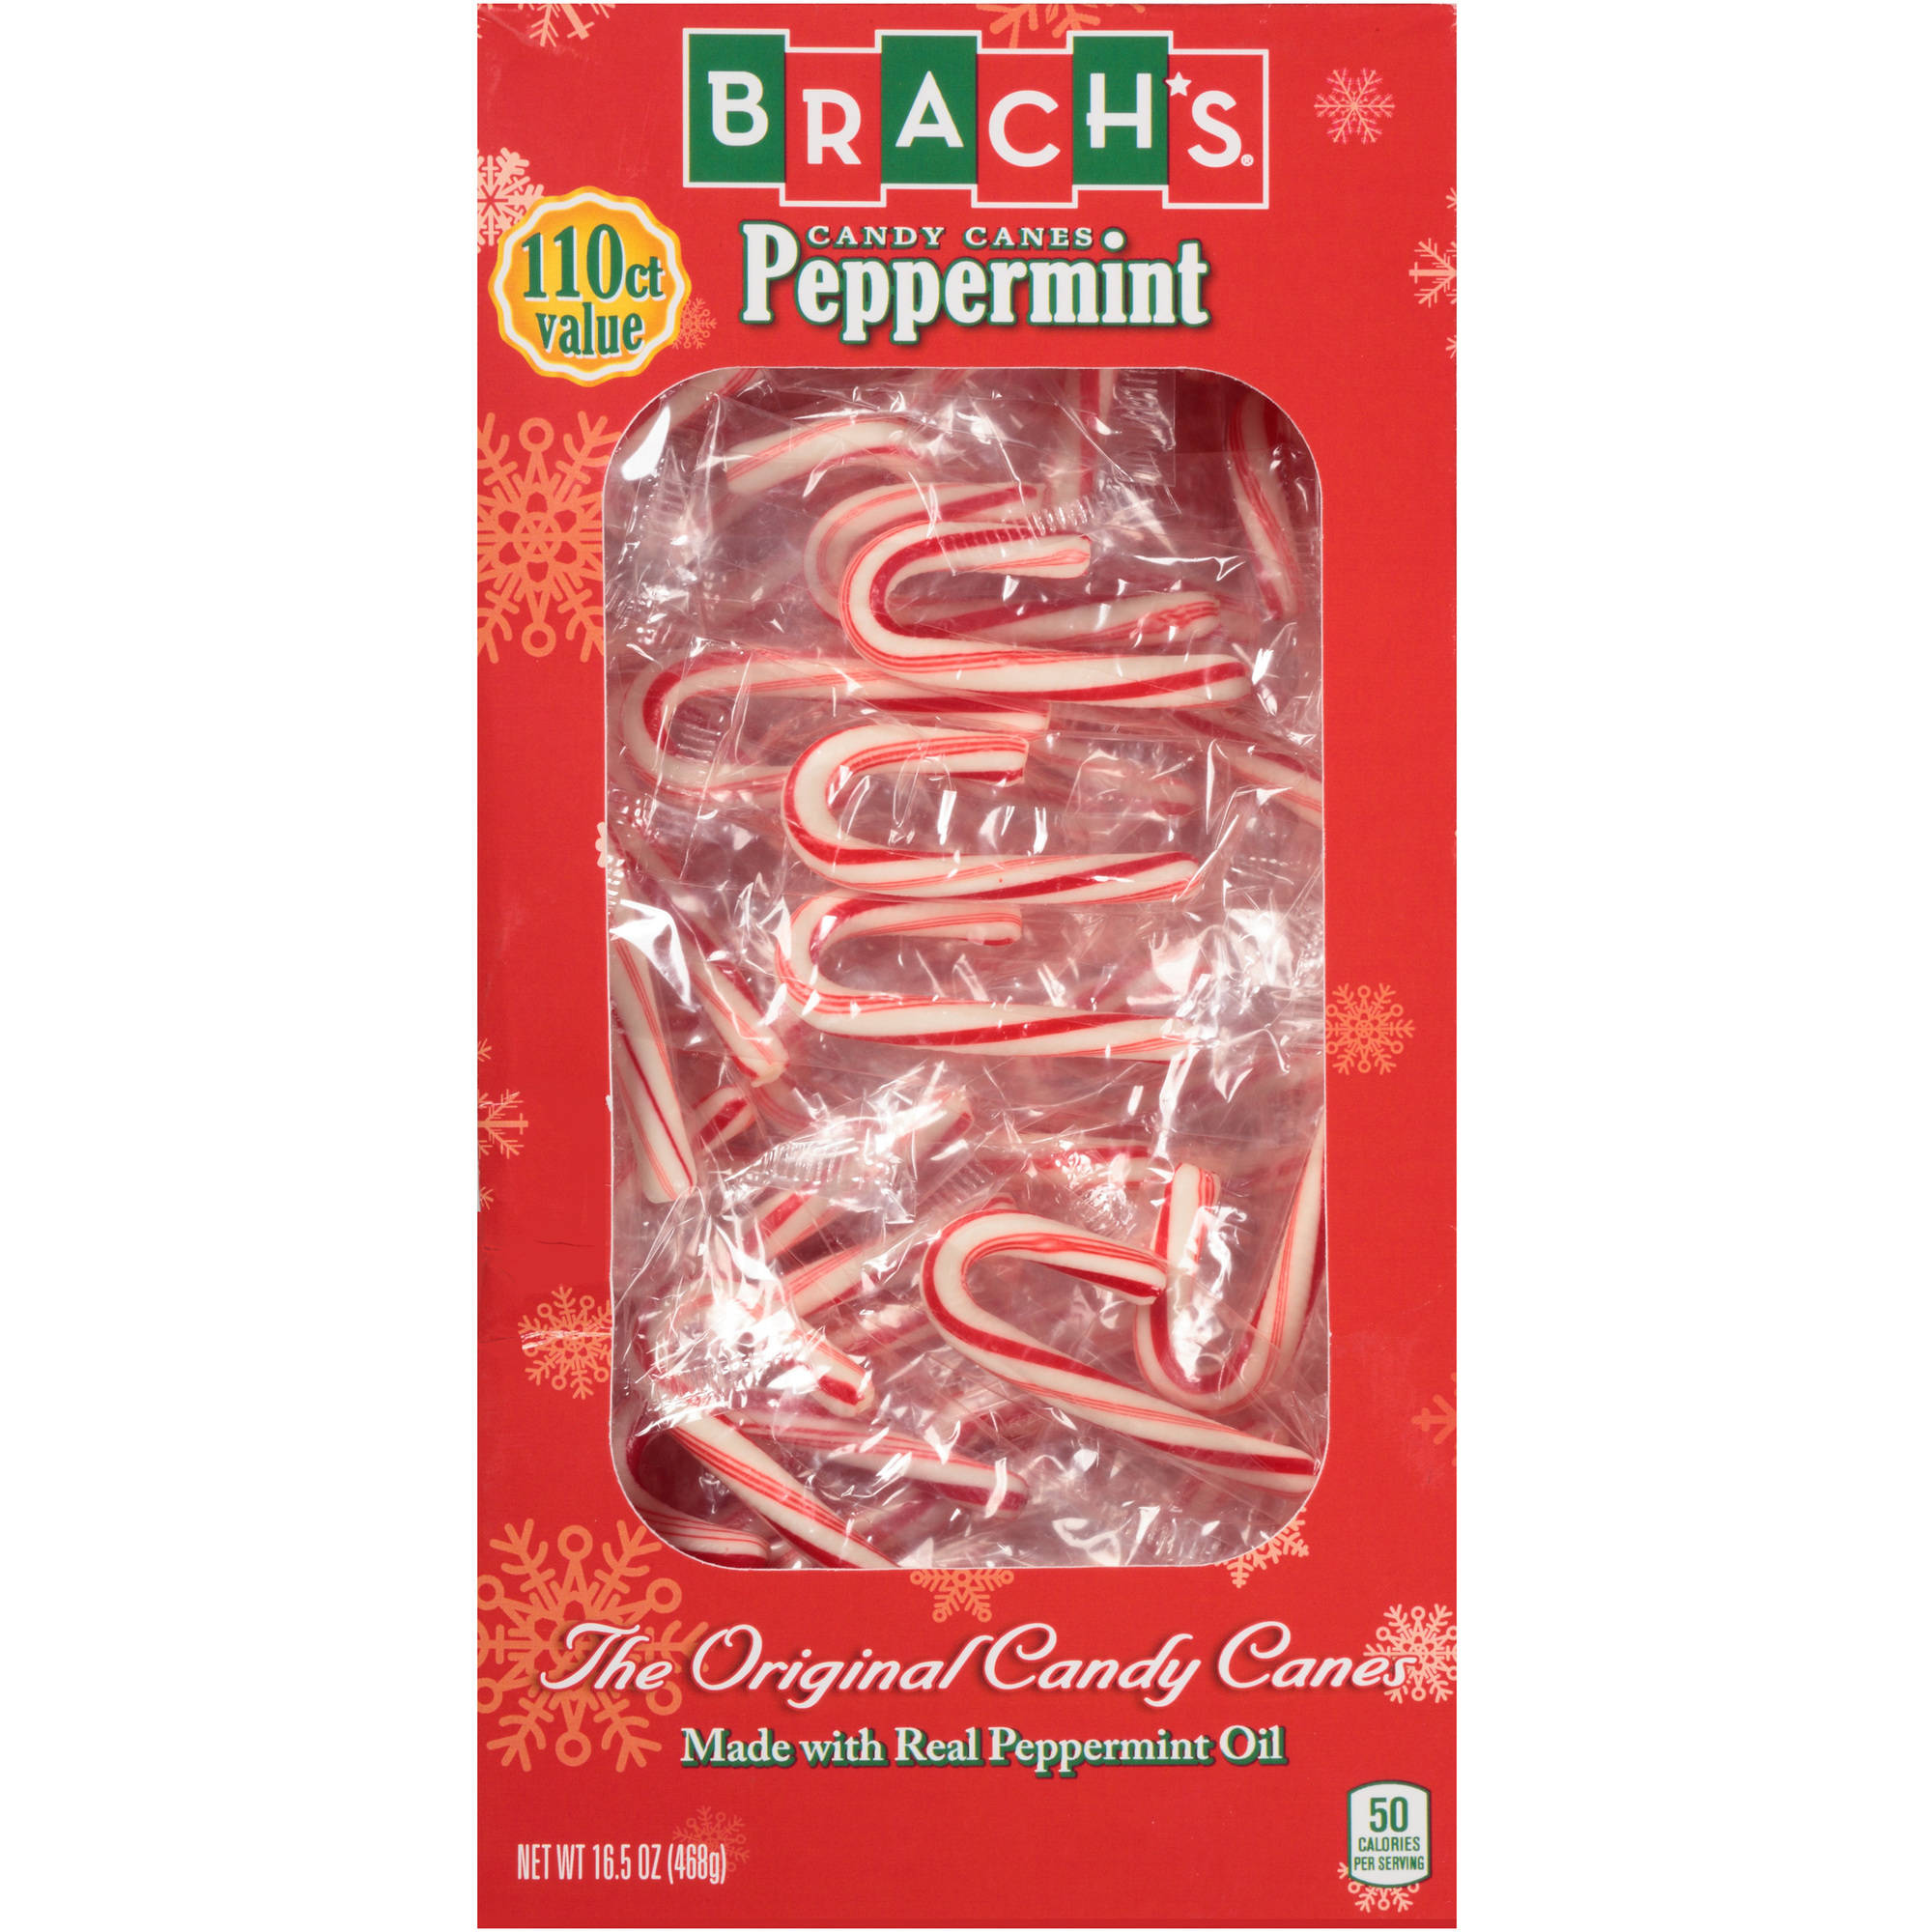 Brach's Holiday Mini Peppermint Candy Canes, 110 count, 16.5 oz